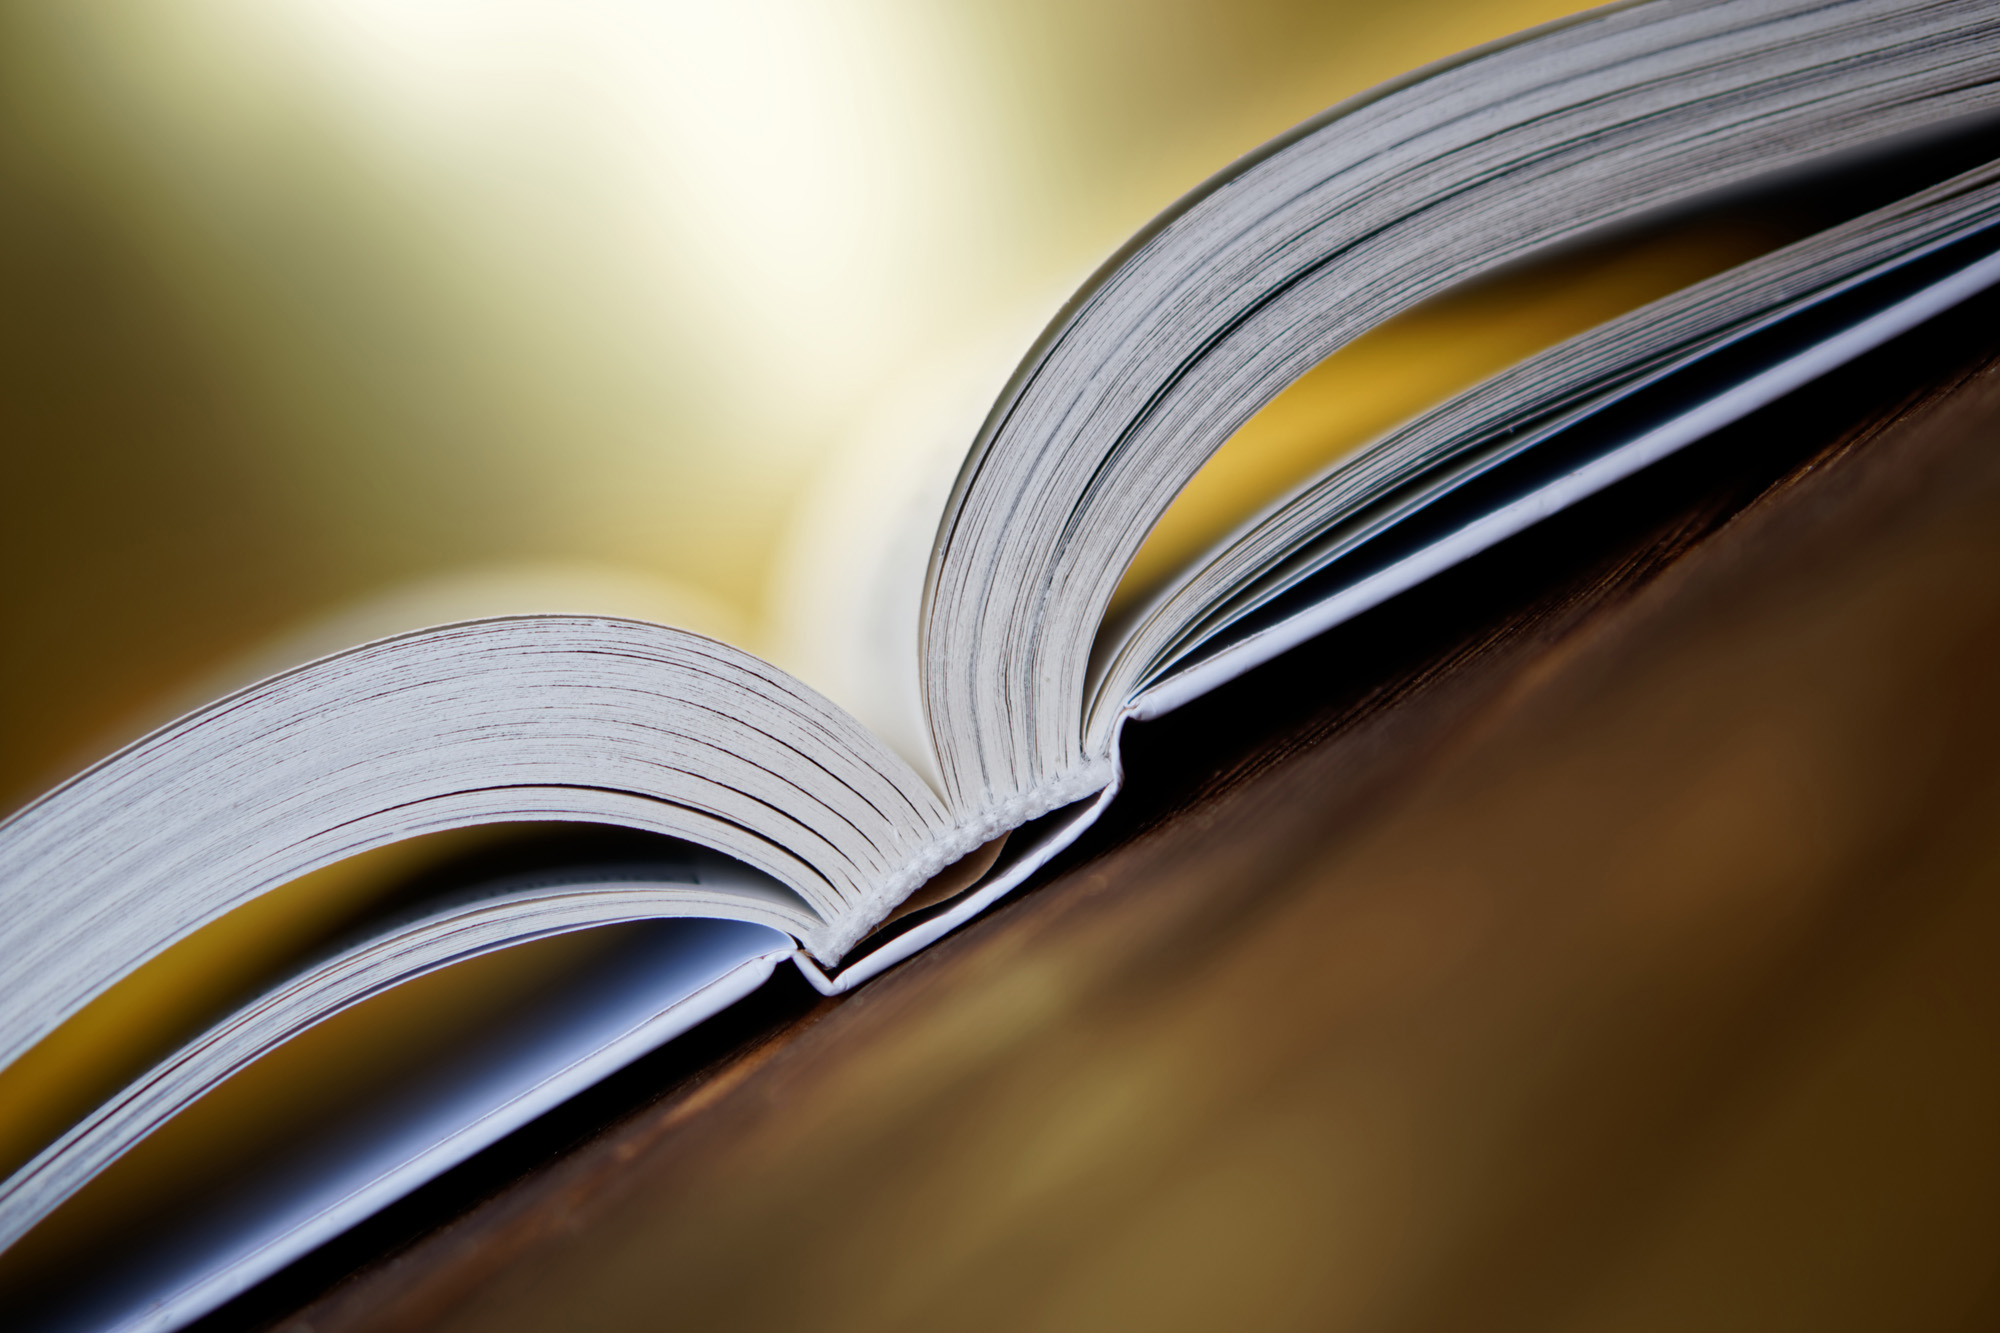 Opened book is lying on the boards on a golden background. Close-up. Diagonal composition